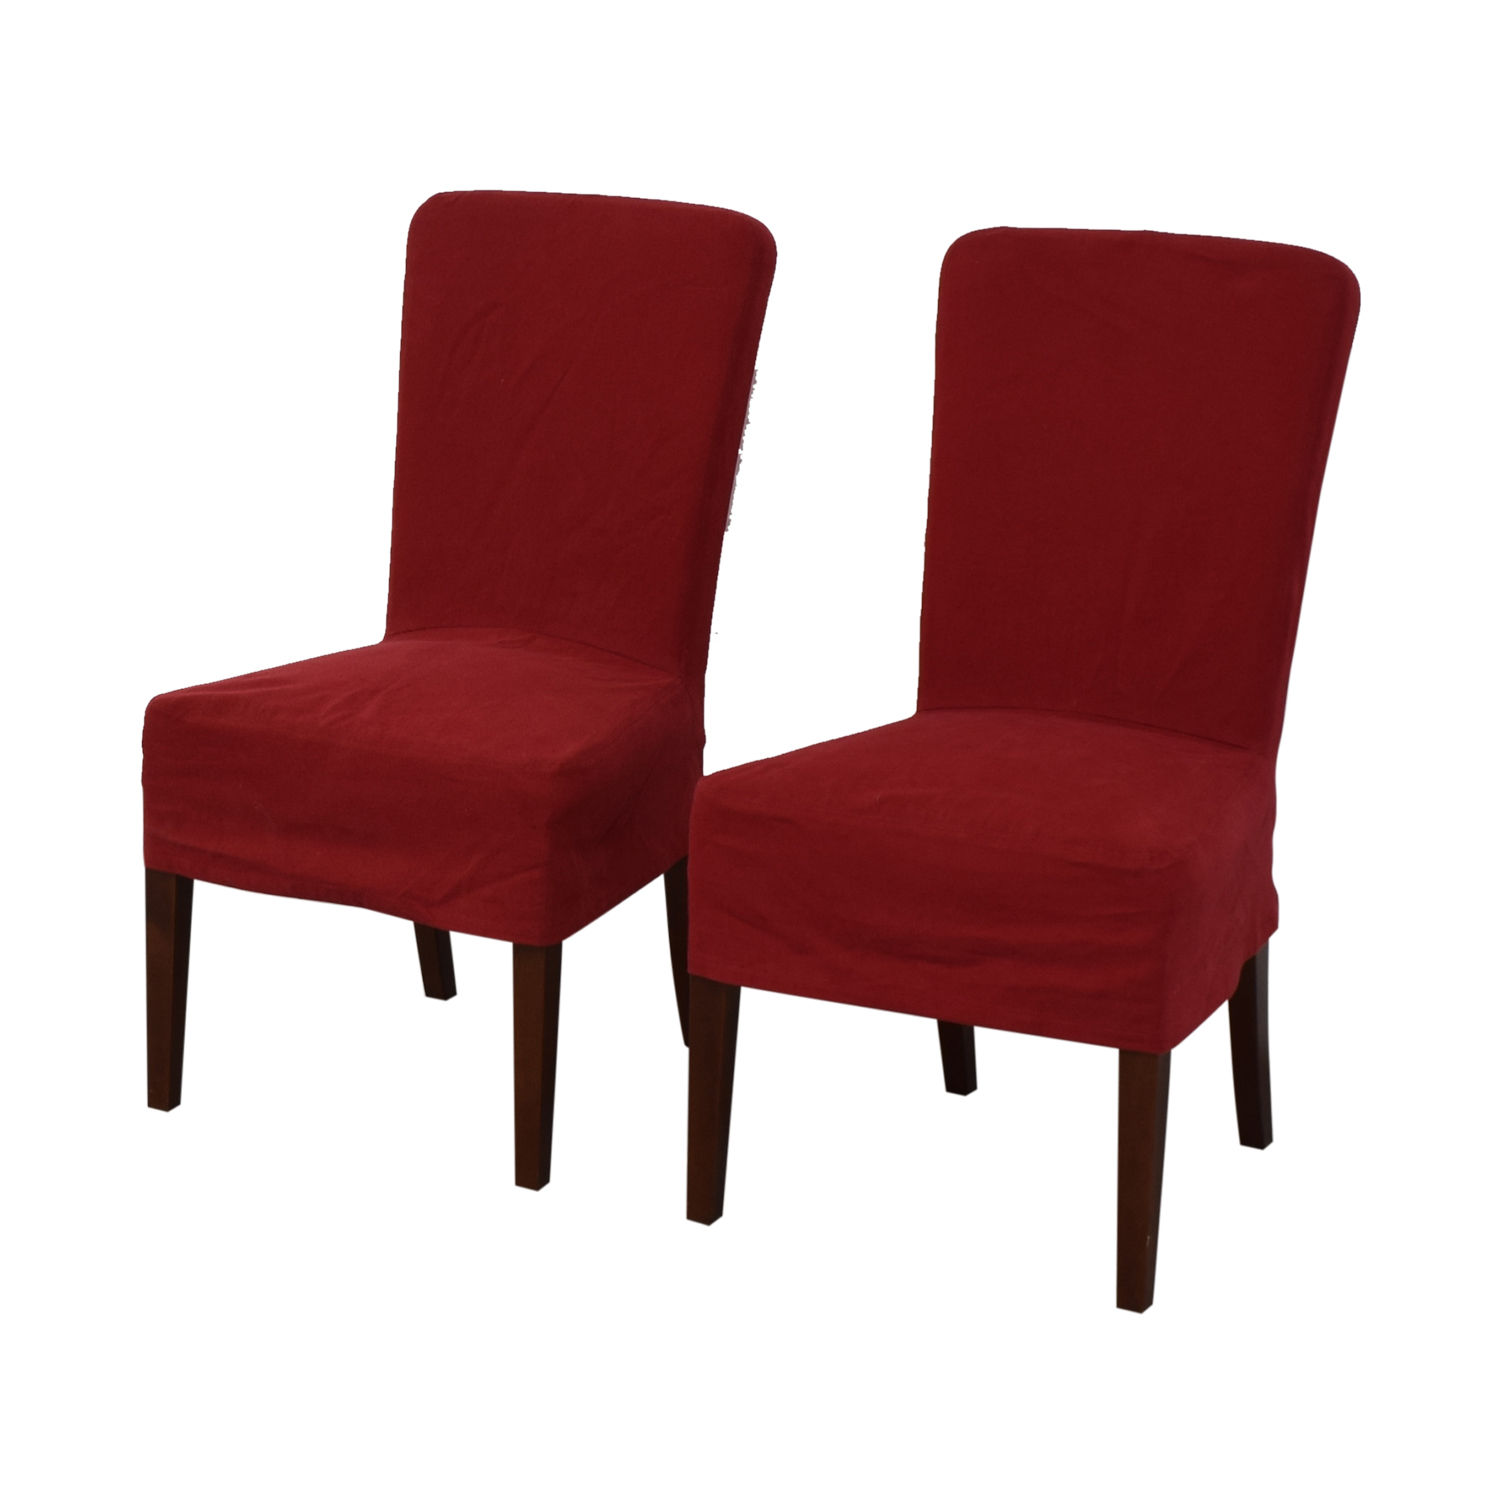 Pottery Barn Pottery Barn Parsons Red Chairs dimensions